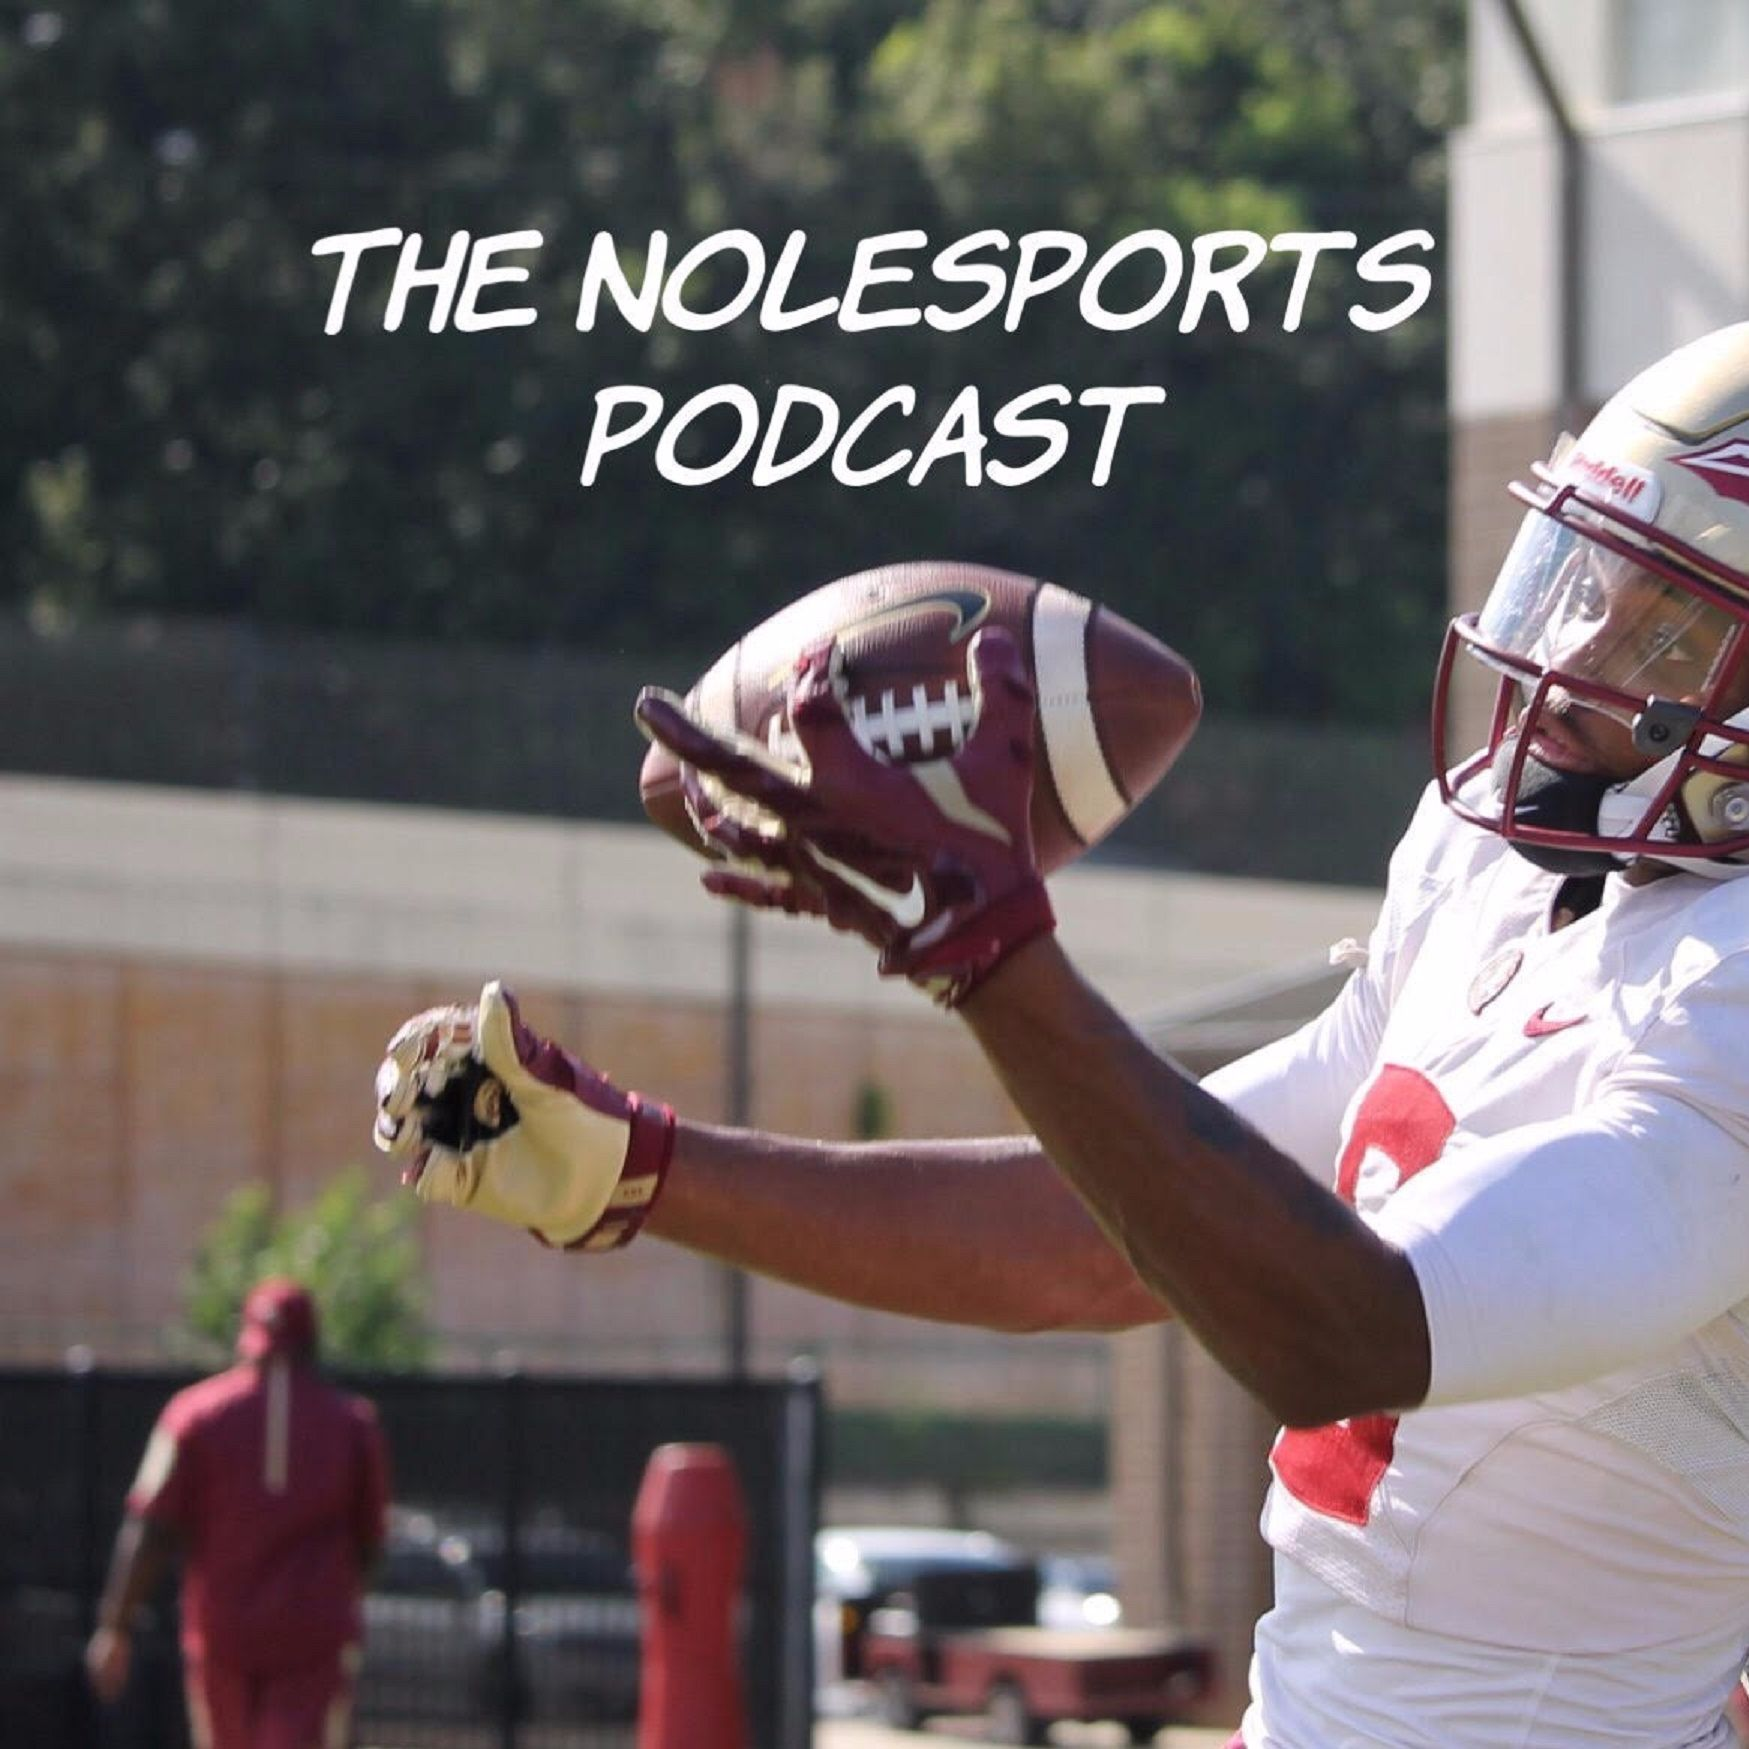 The NoleSports Podcast